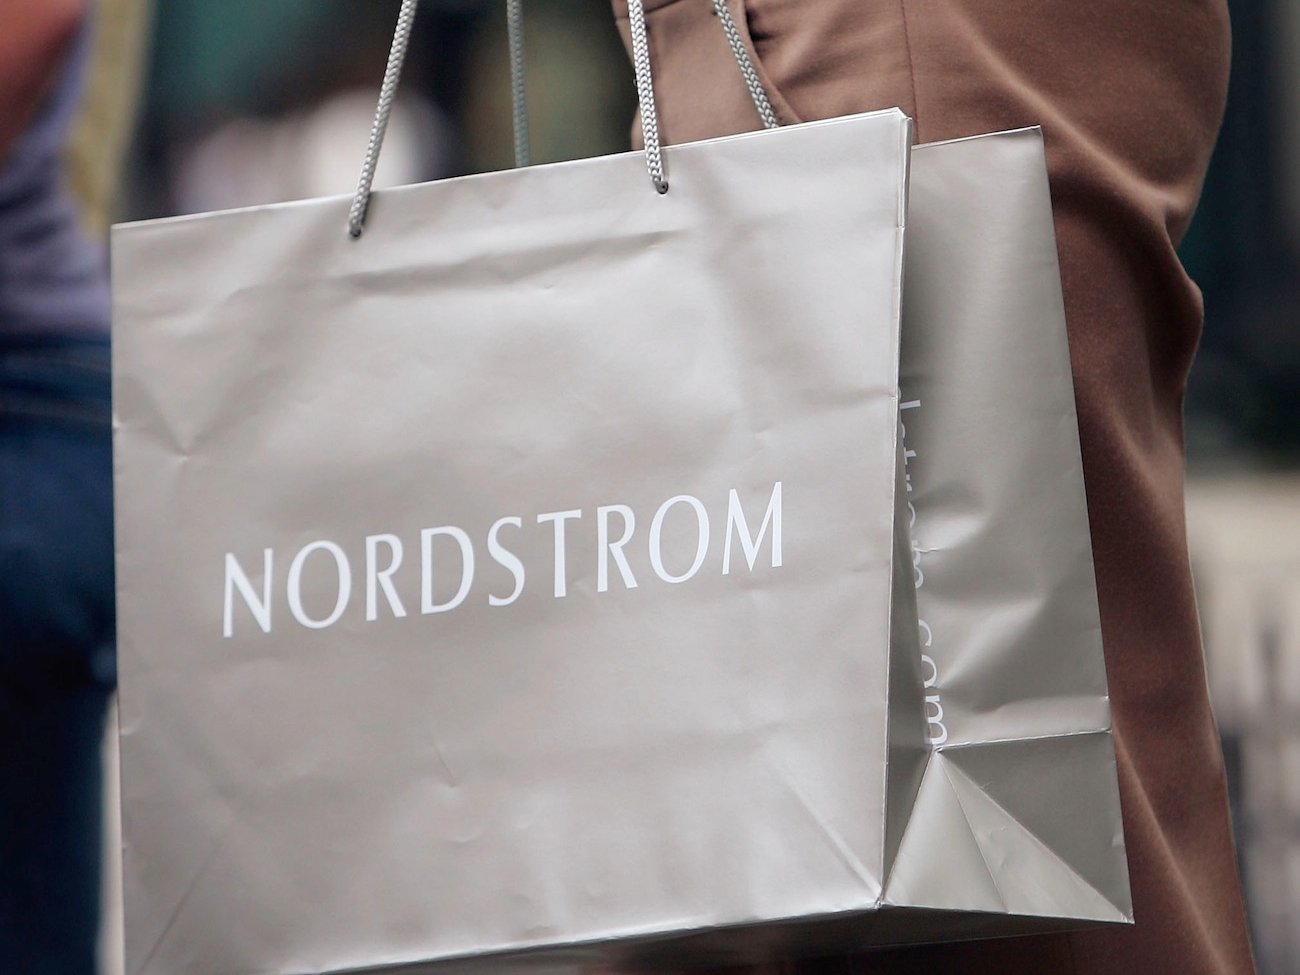 how nordstrom bests its retail rivals Is nordstrom the next acquisition target for walmart or of the factors vexing its rivals in its nordstrom is absolutely by far the best at outlet.